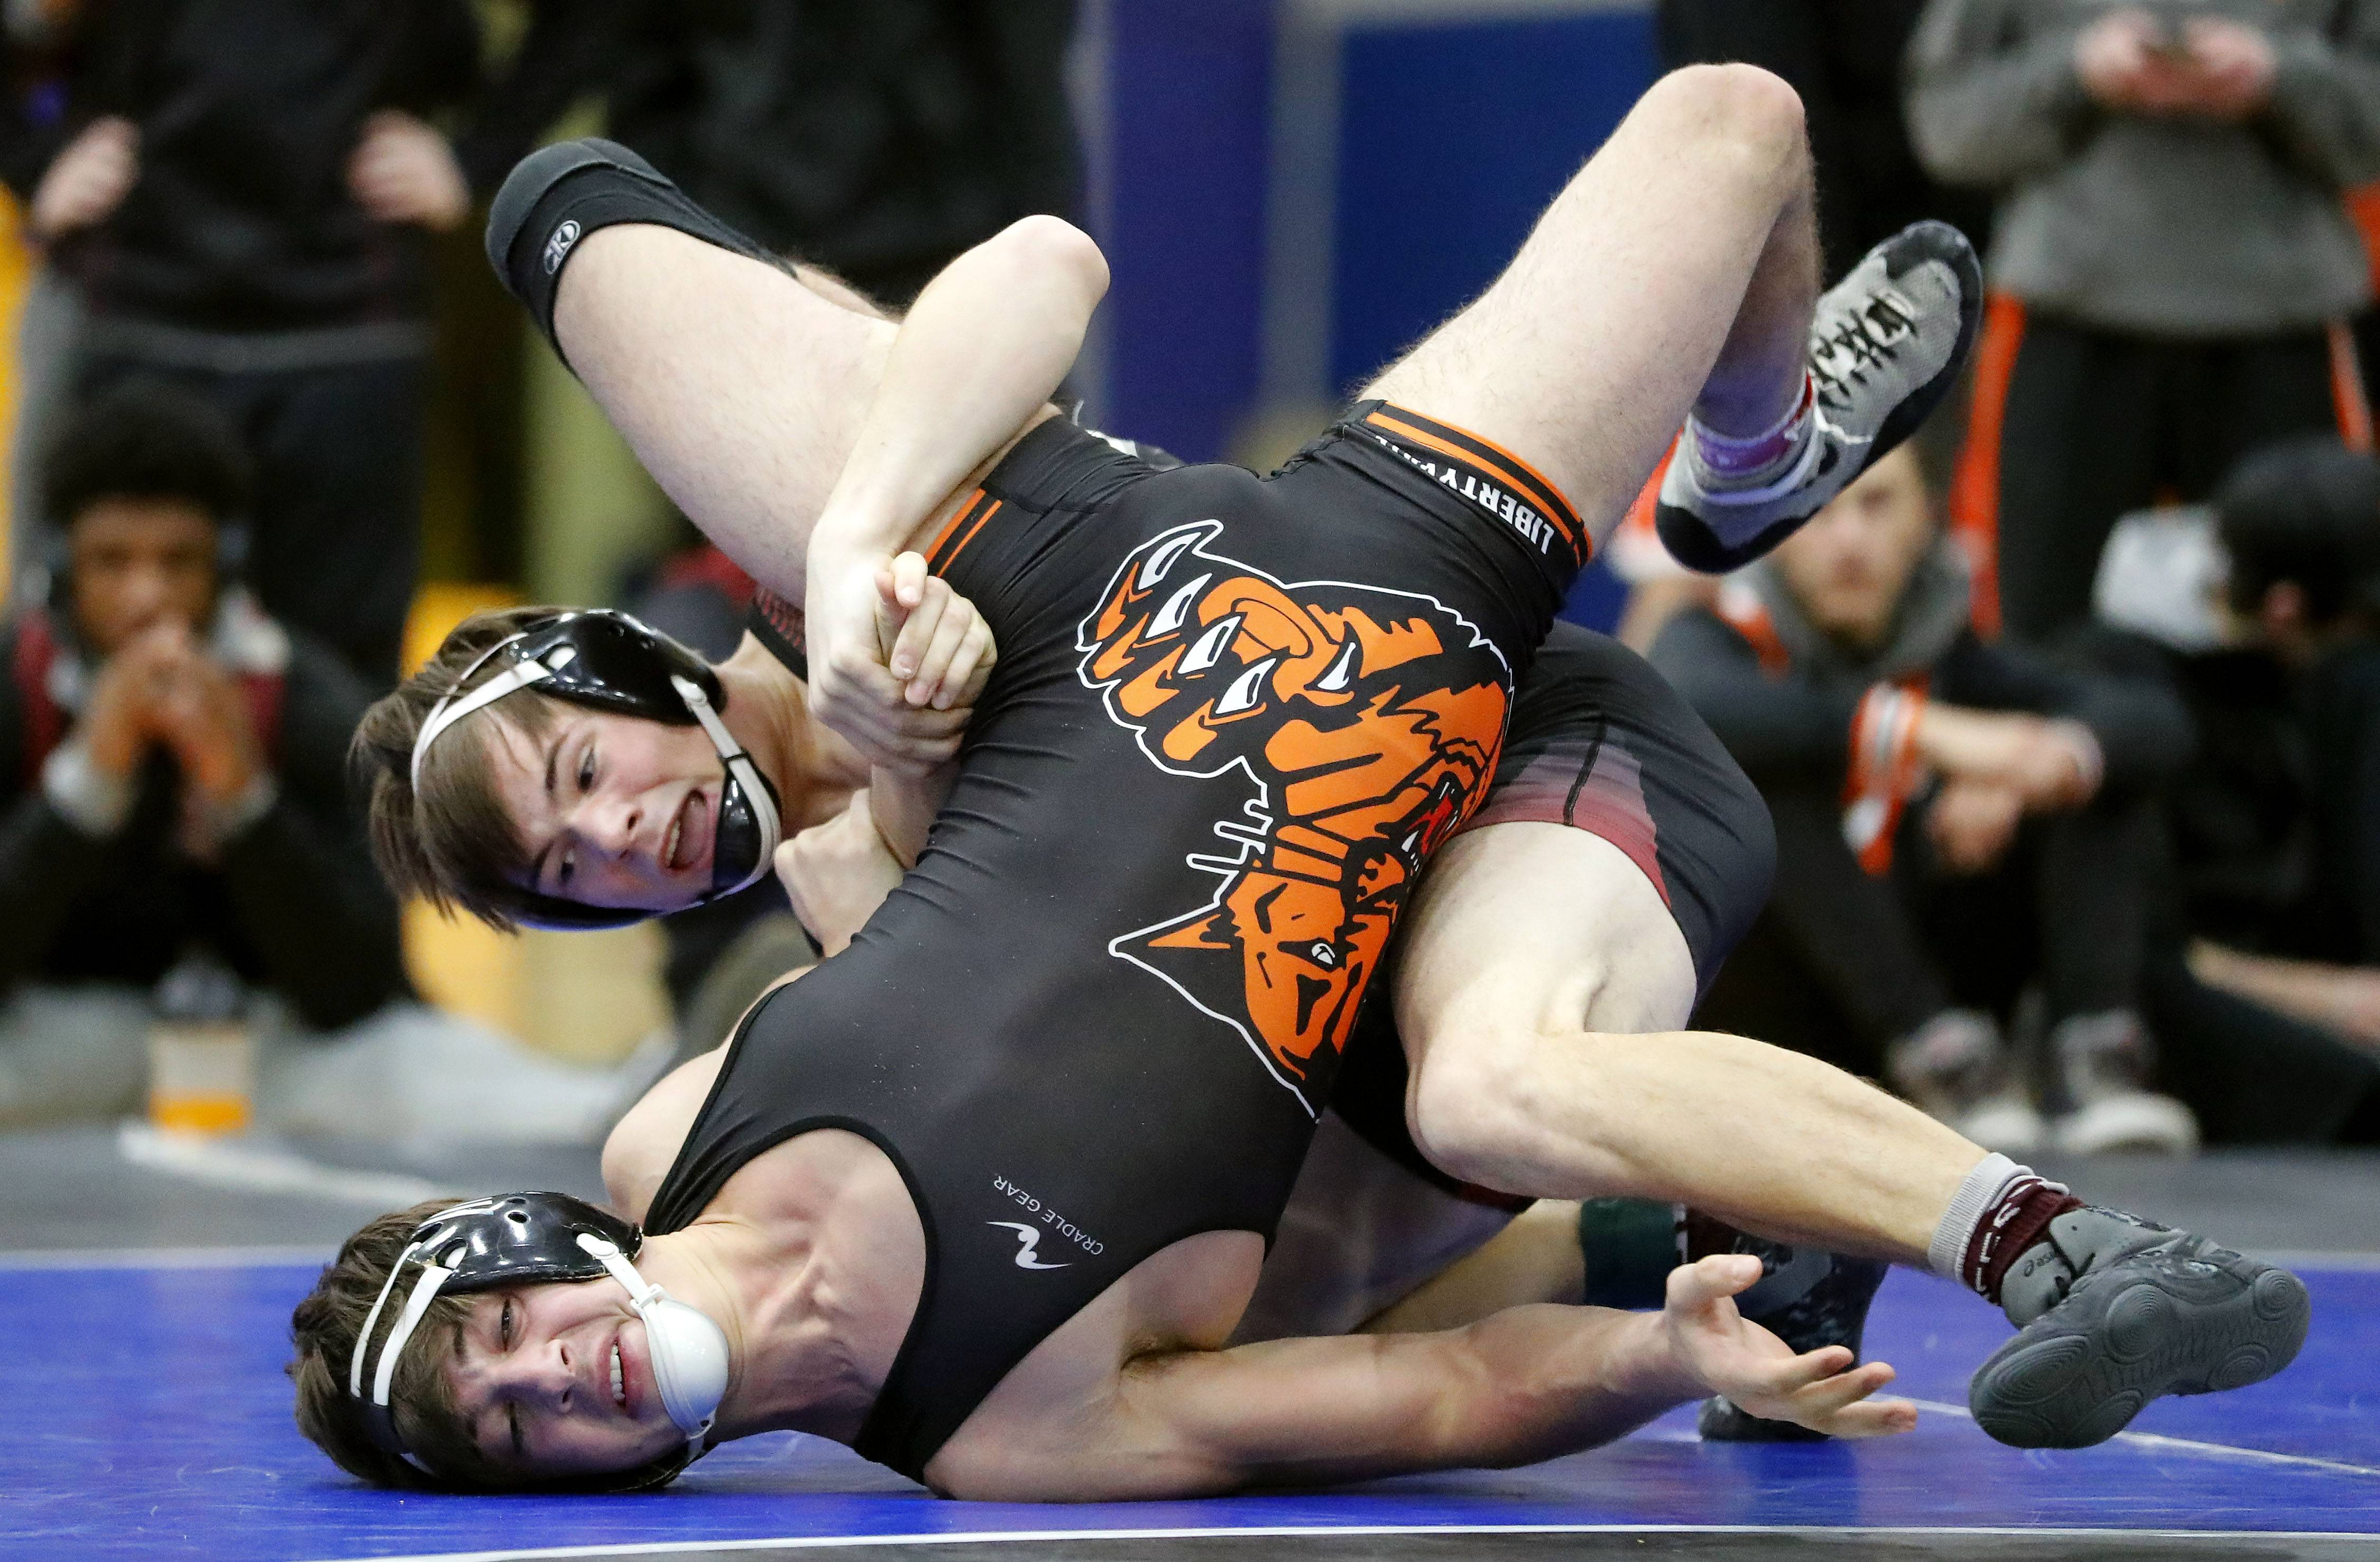 Libertyville's Niko Christensen, bottom, takes on Zion's Tyler Creamer in the 160-pound third-place match during the Class 3A Warren regional Saturday in Gurnee.